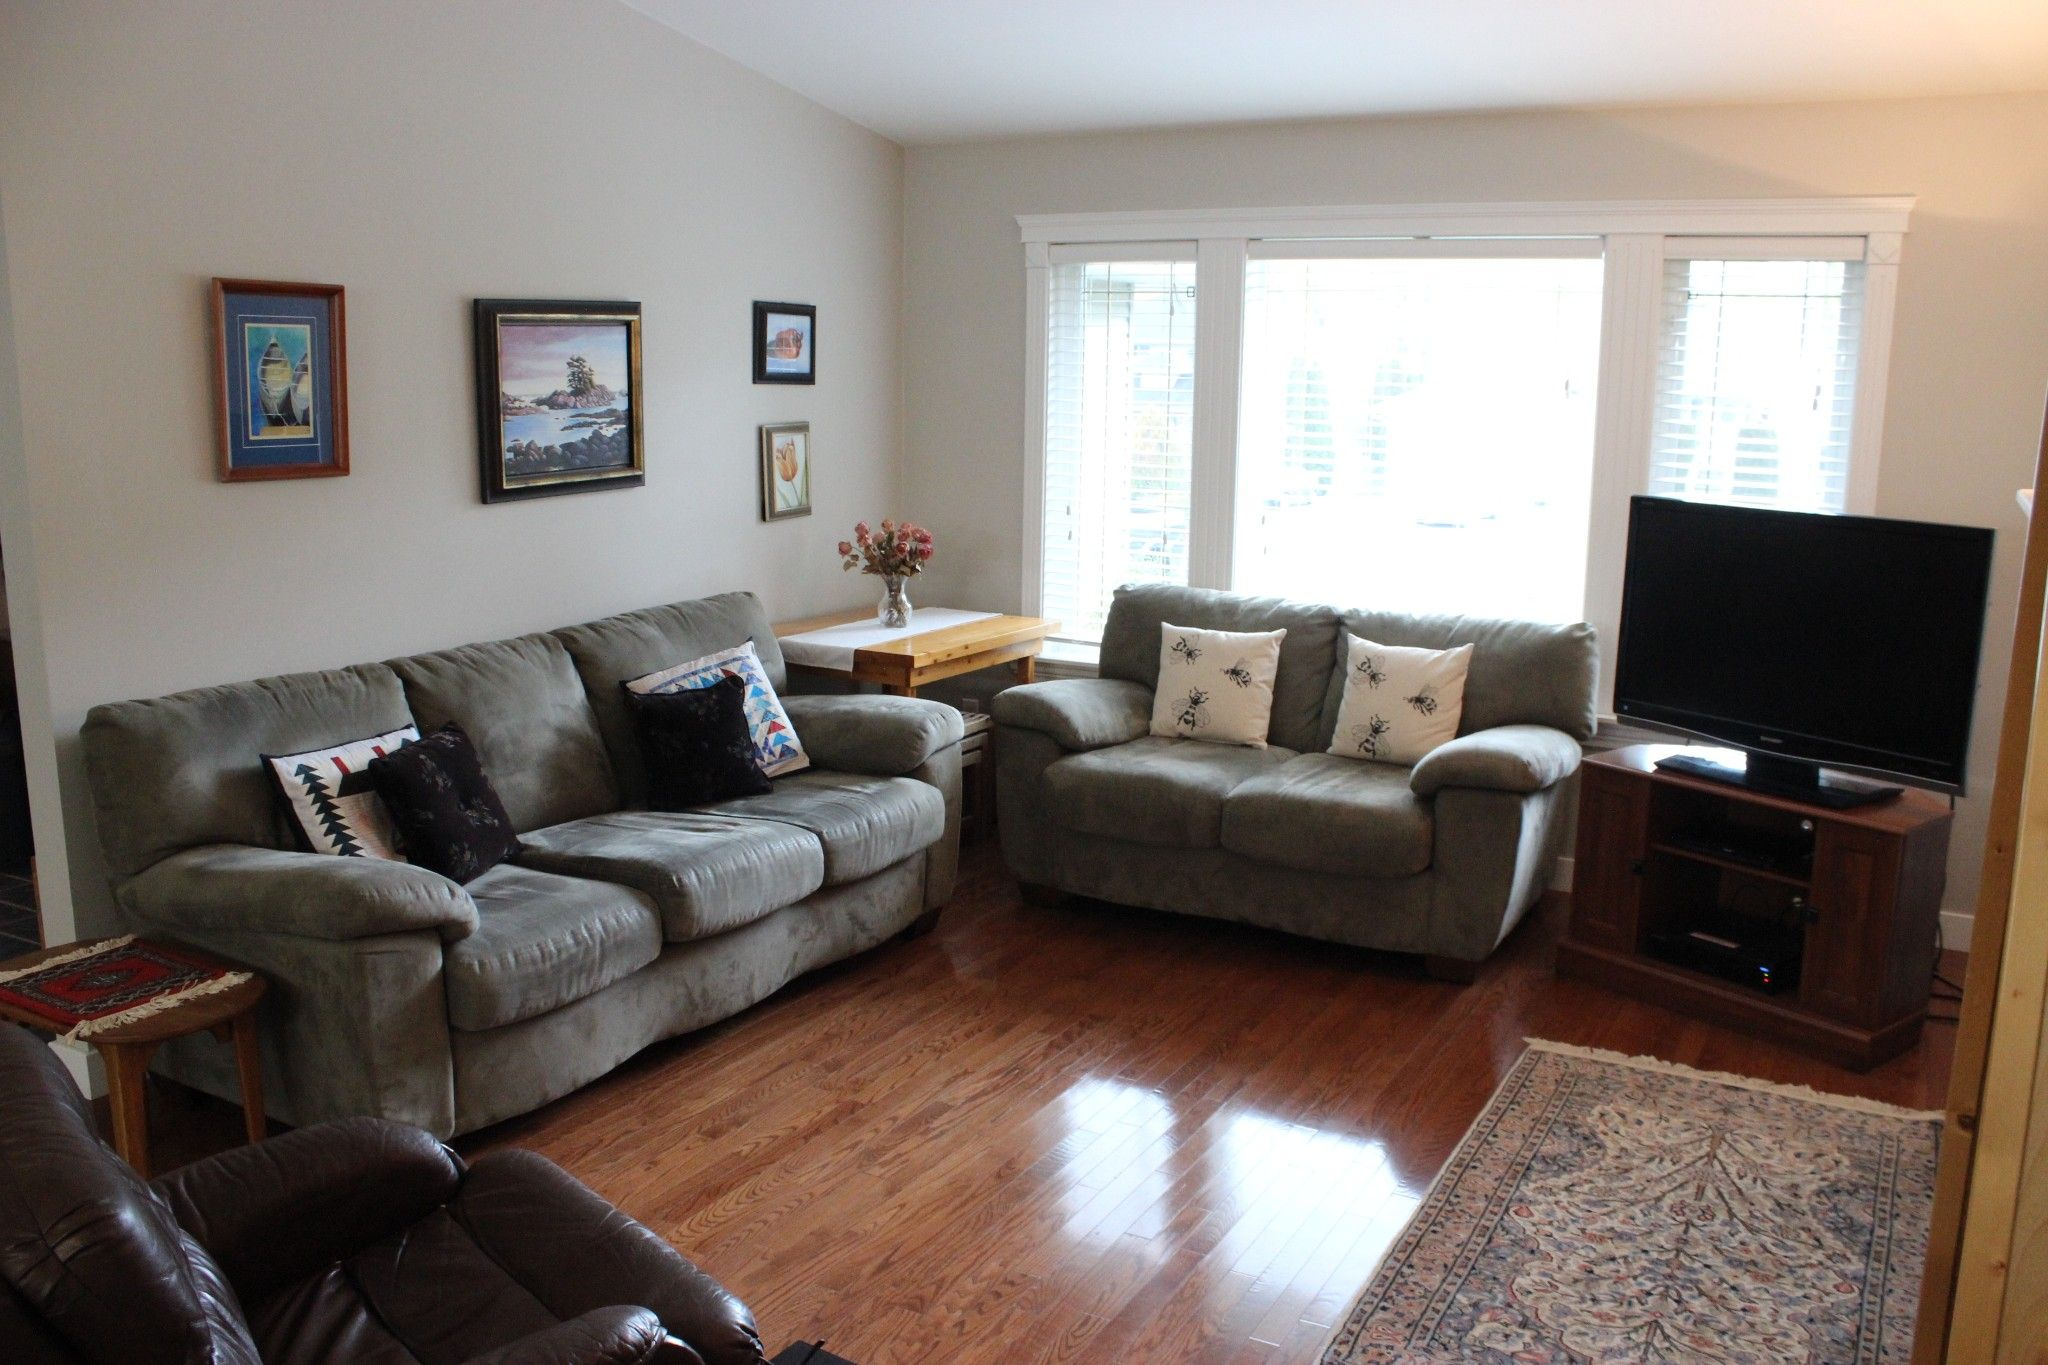 Photo 3: Photos: 351 Juniper Street in Chase: House for sale : MLS®# 151124